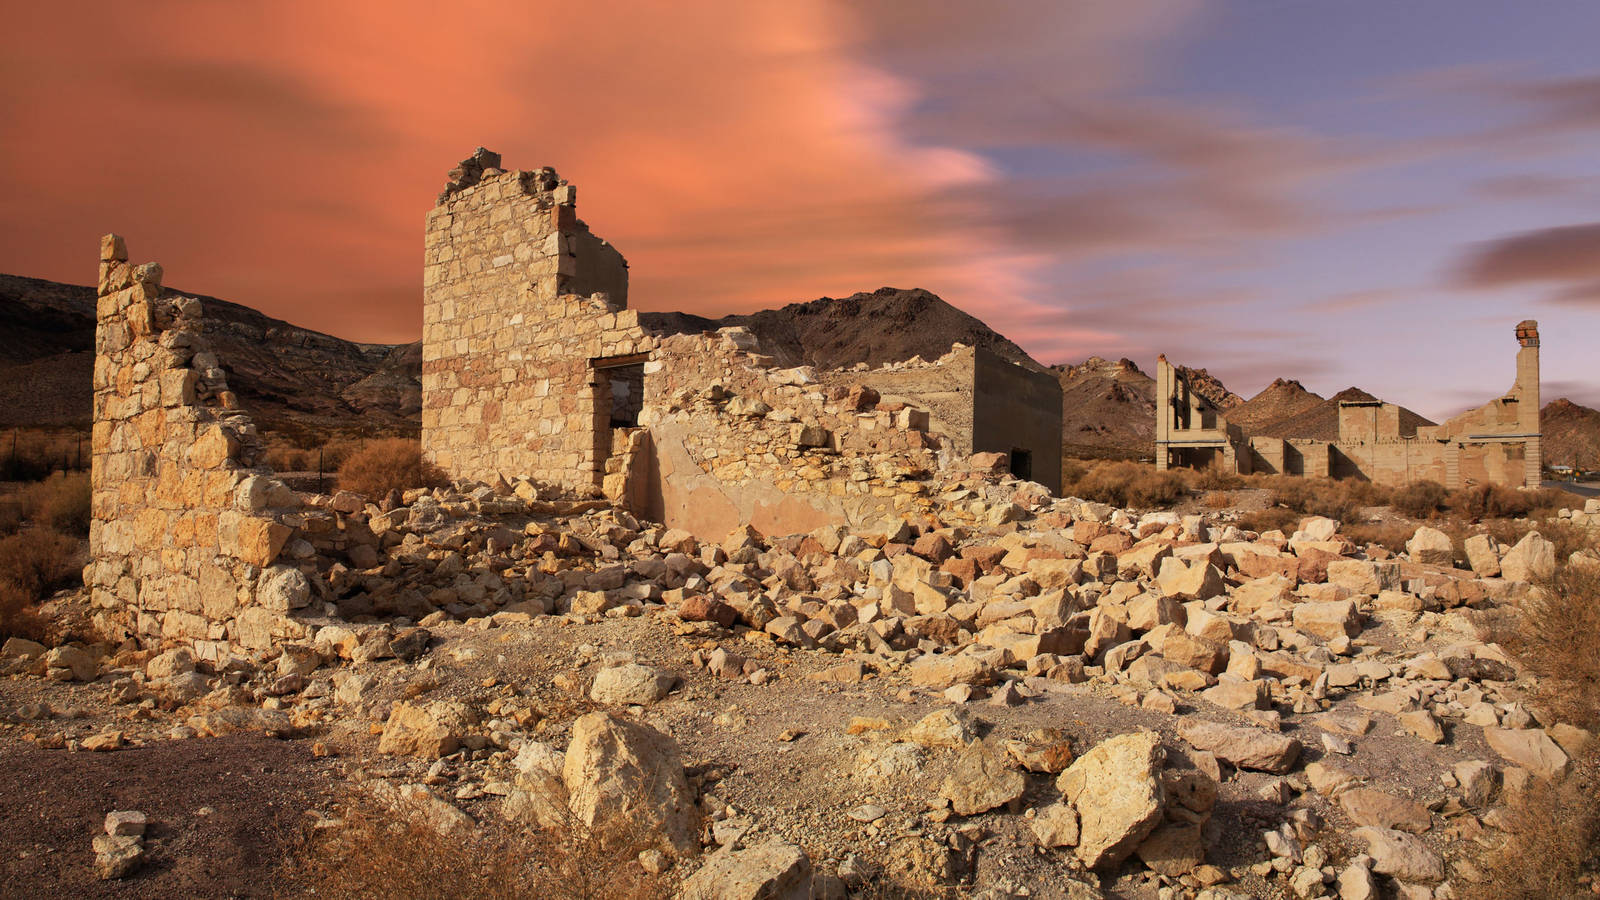 Vacation with Ghosts in These 10 Deserted National Park Towns